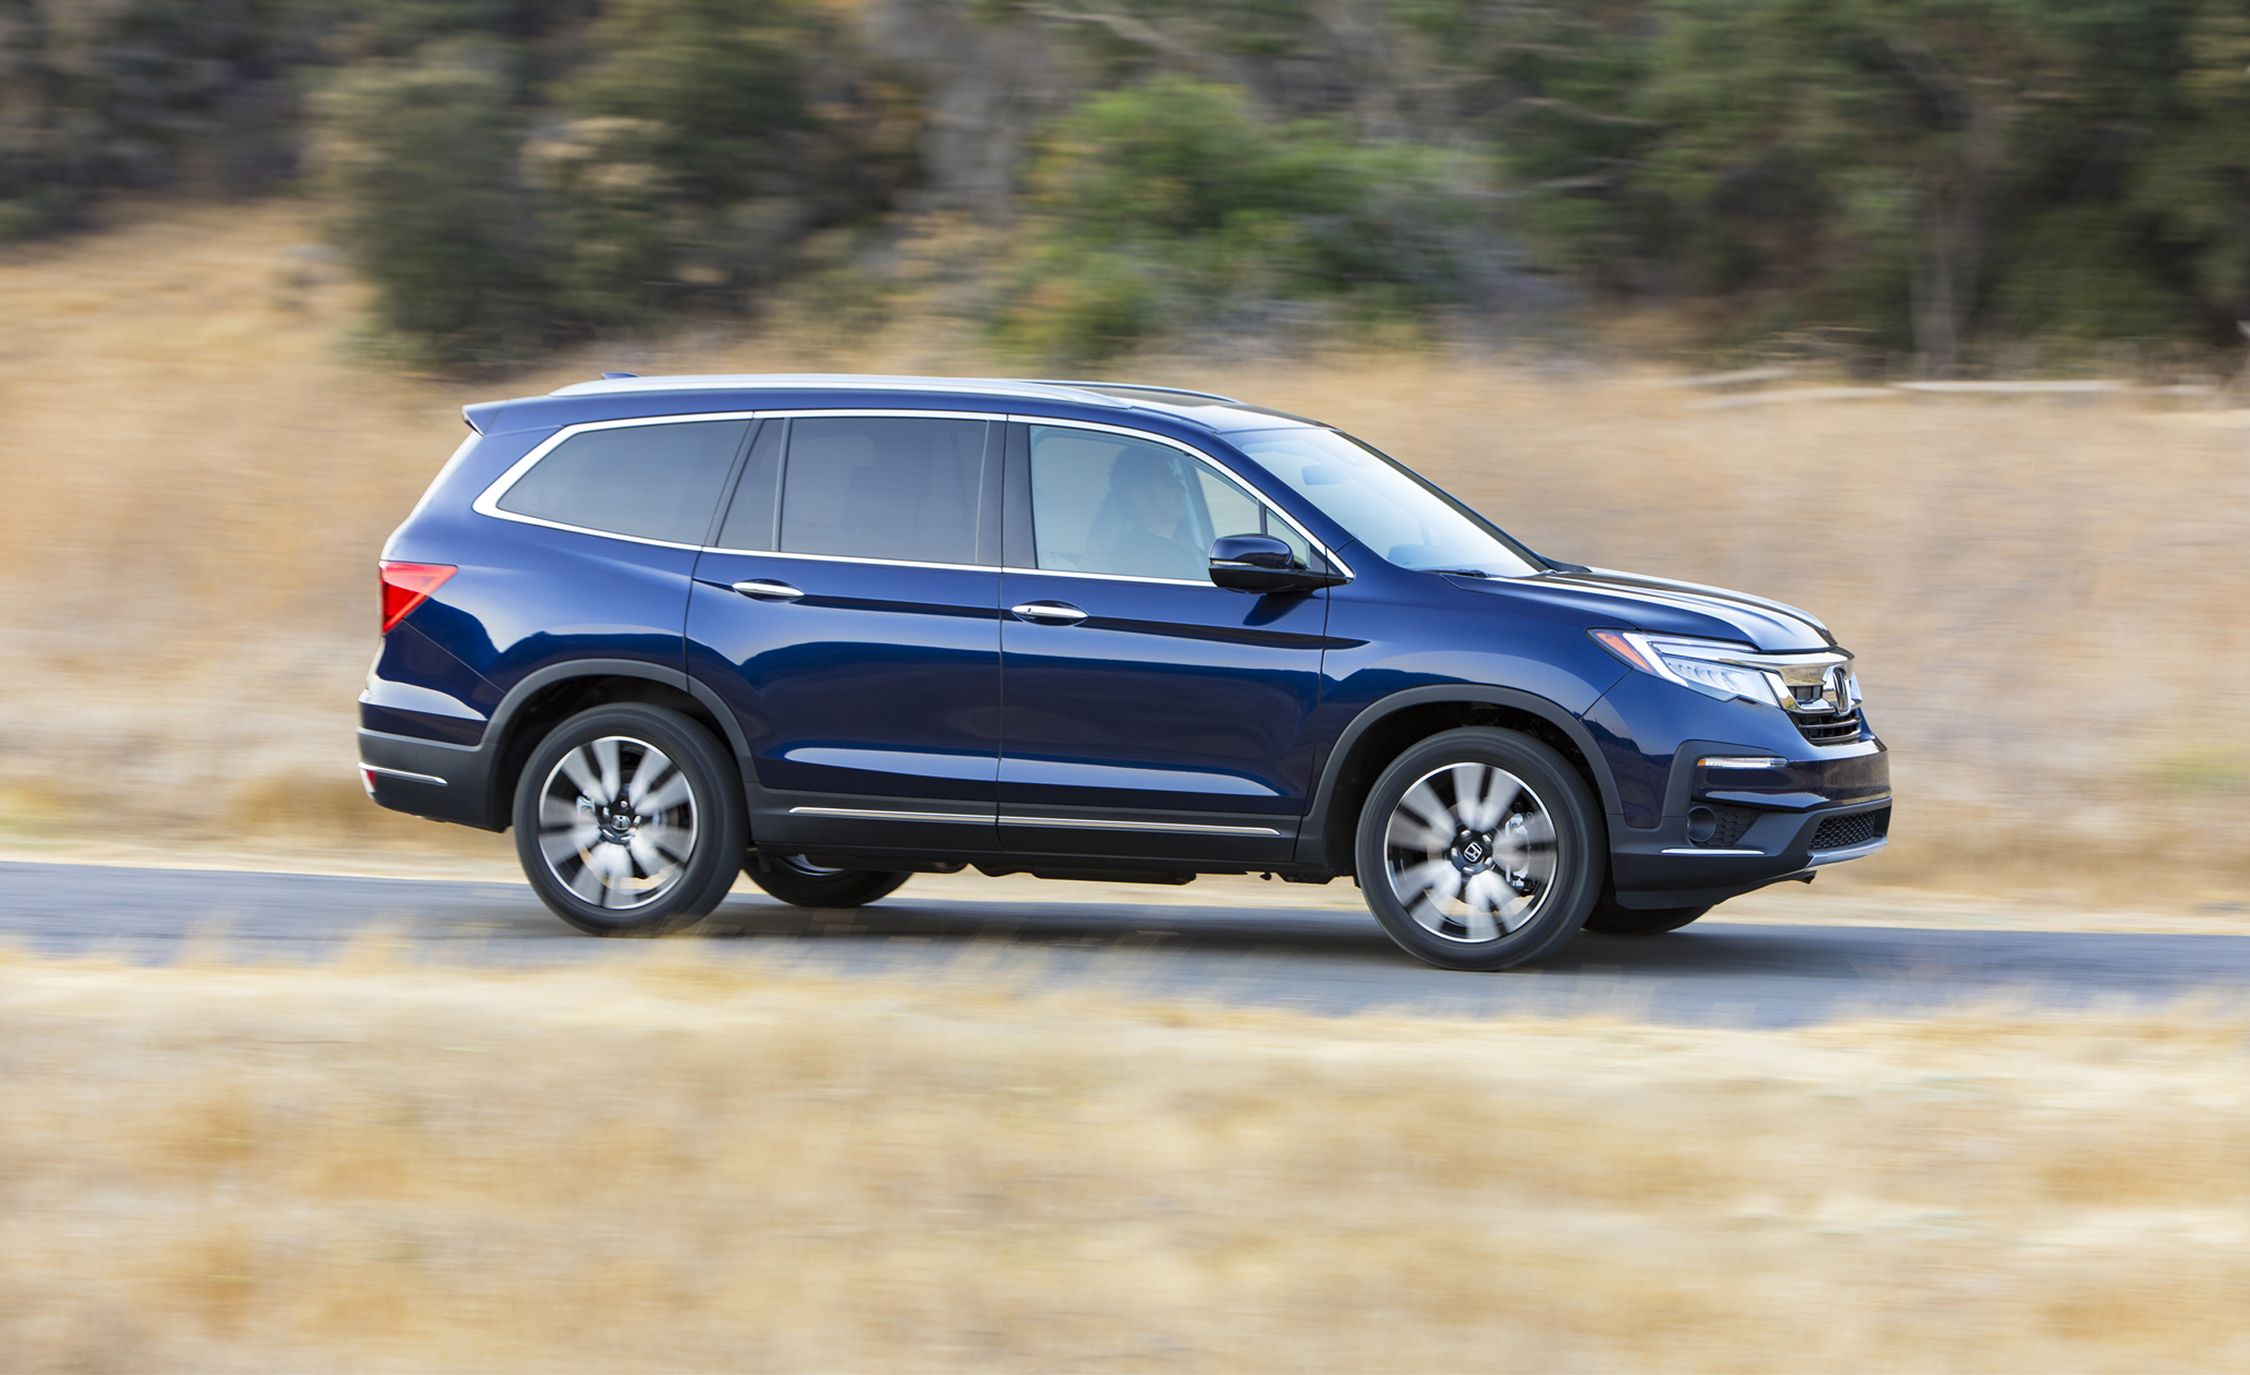 Suvs For Sale >> 2019 Honda Pilot – Refreshed Looks, Better Driving